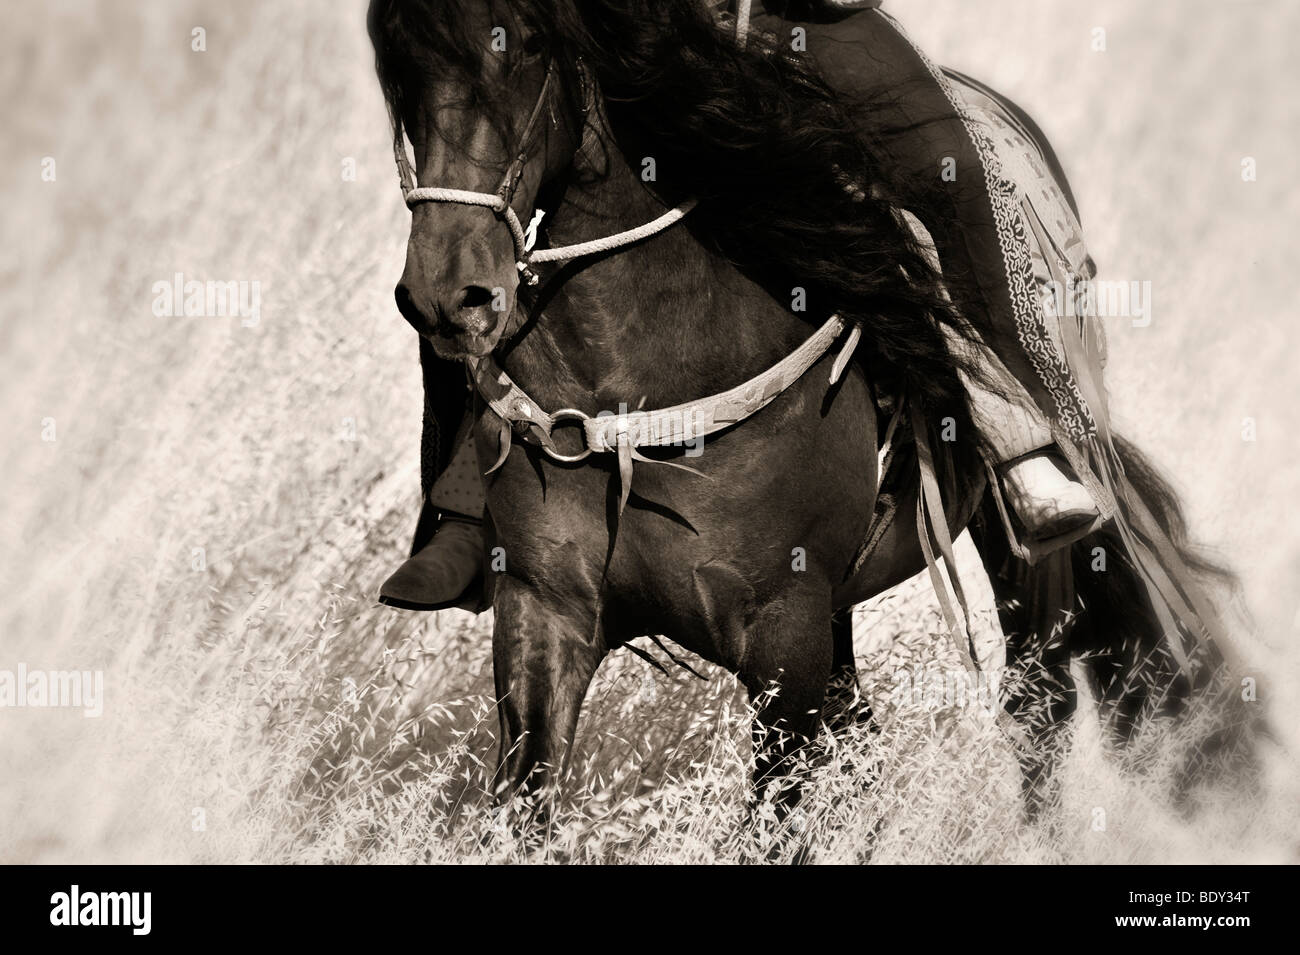 Charro Rider on Horseback - Stock Image